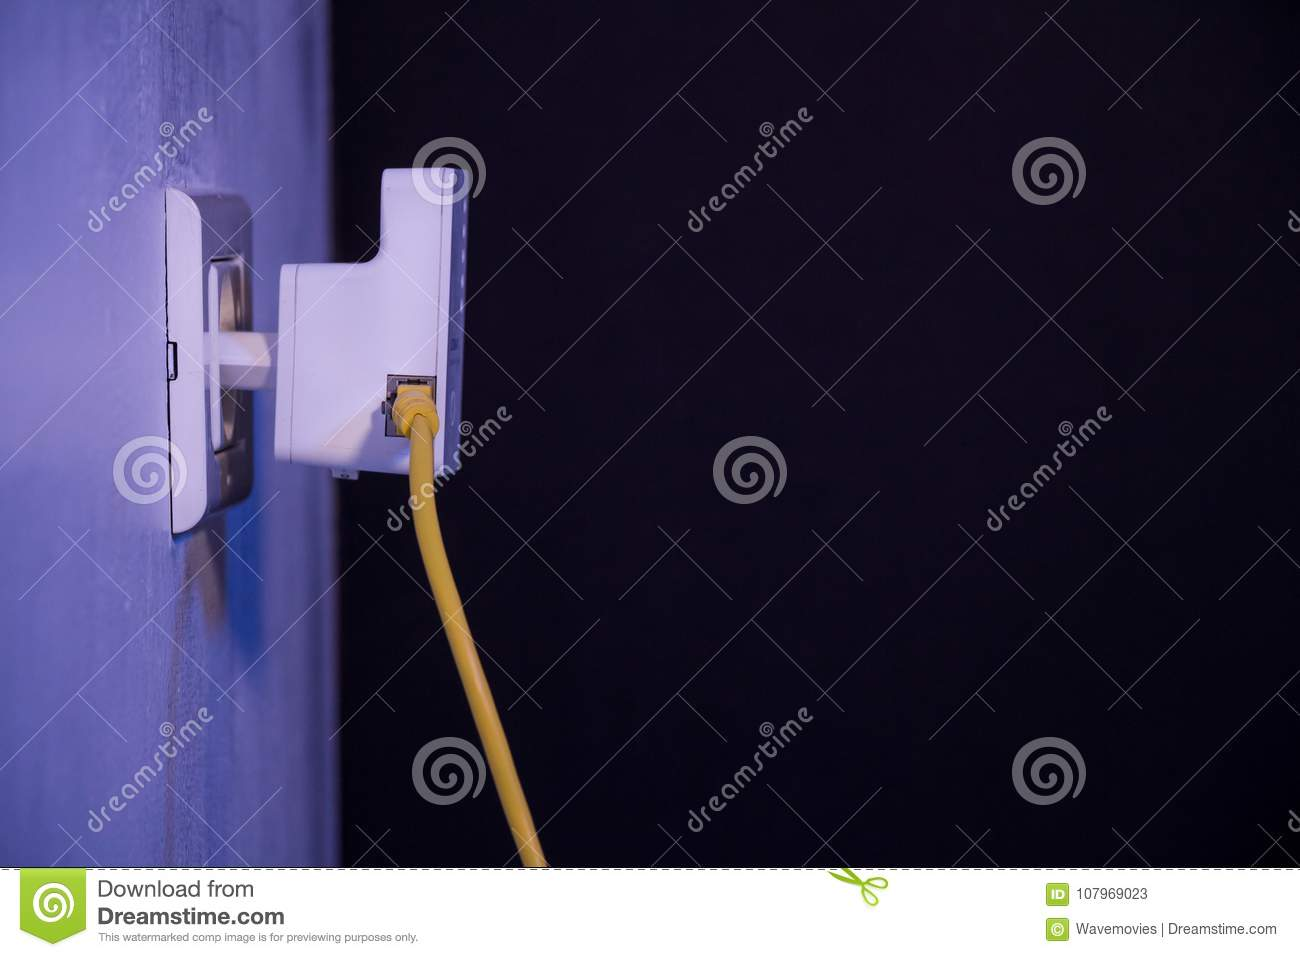 Wifi Extender In Electrical Socket On The Wall With Ethernet Cab Poin Jack Wiring Cable Plugged Device Is Access Point Mode That Help To Extend Wireless Network